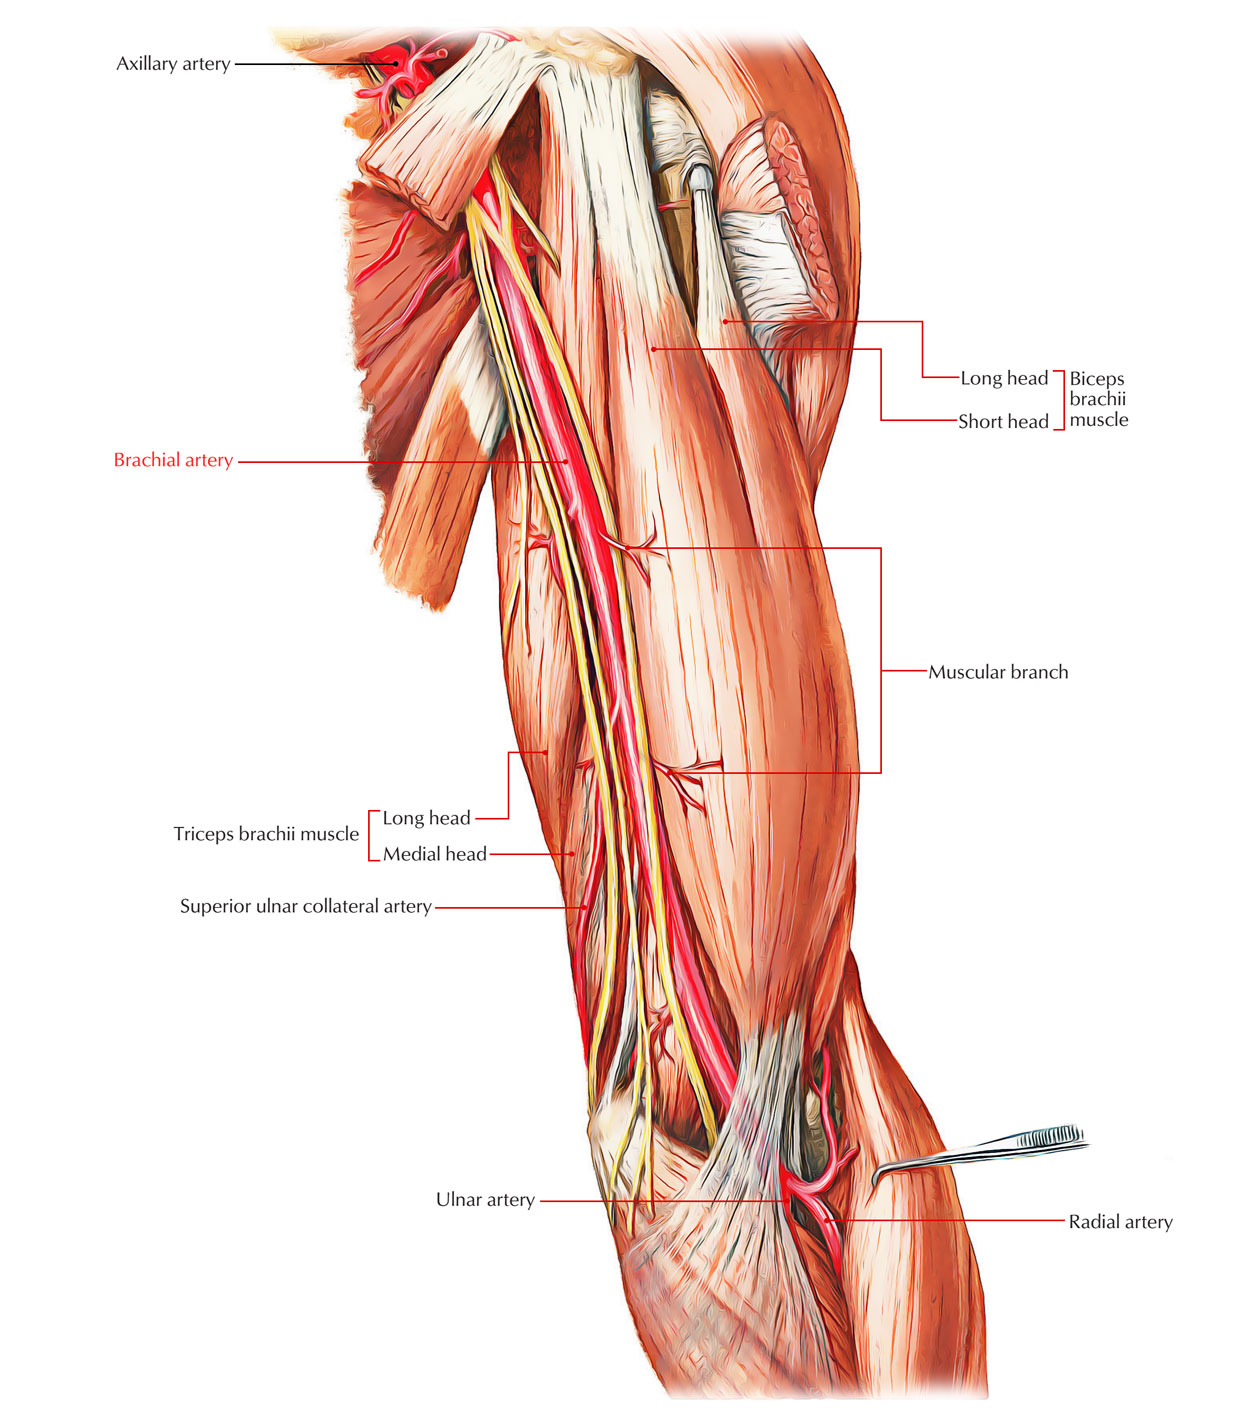 Easy Notes On Arteries Of The Upper Limb Learn In Just 4